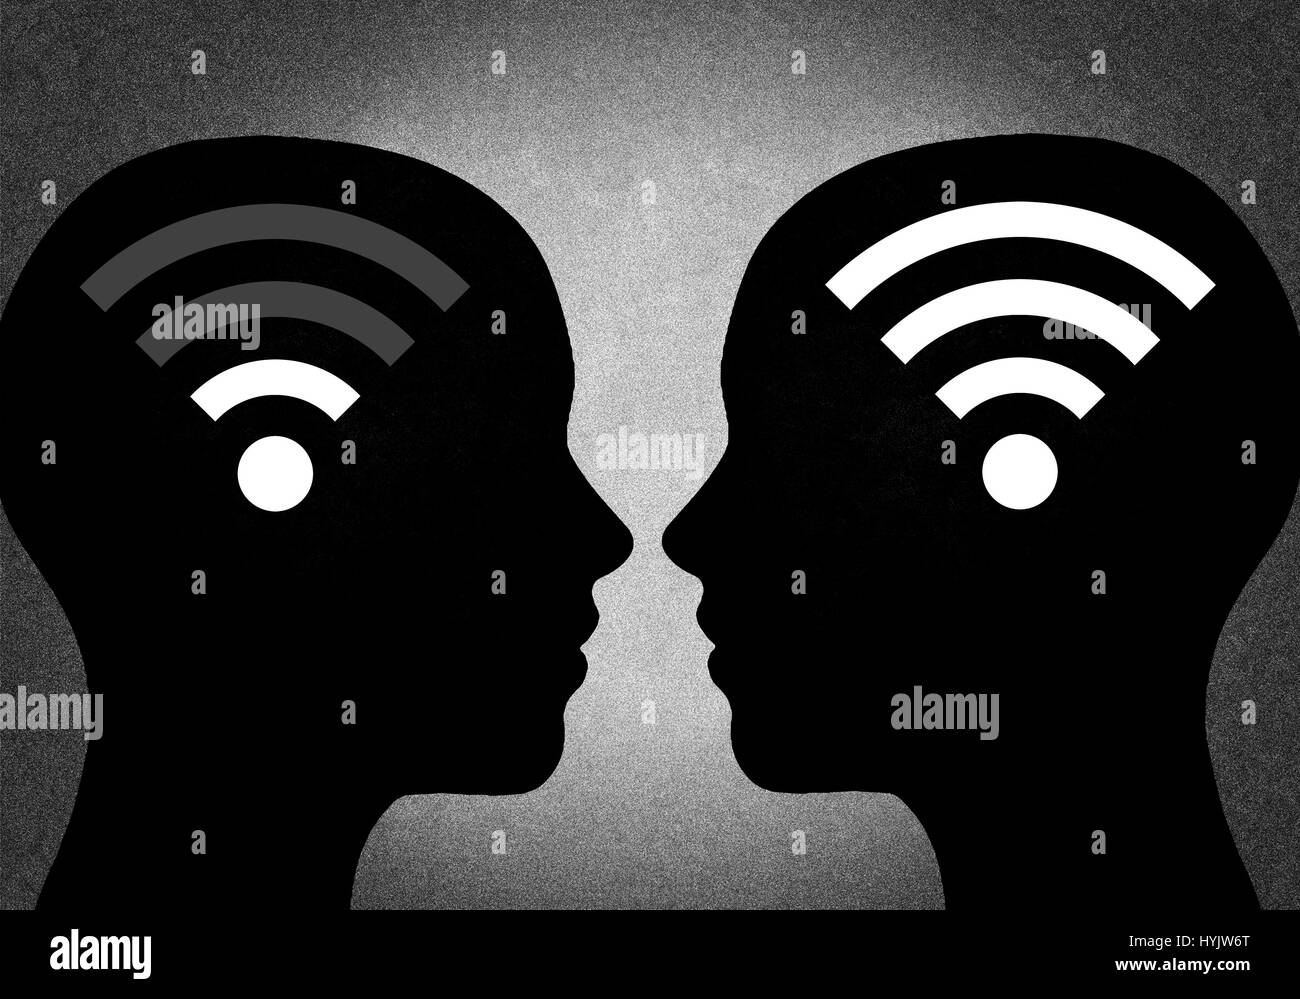 Silhouette of head with wifi signal - Stock Image